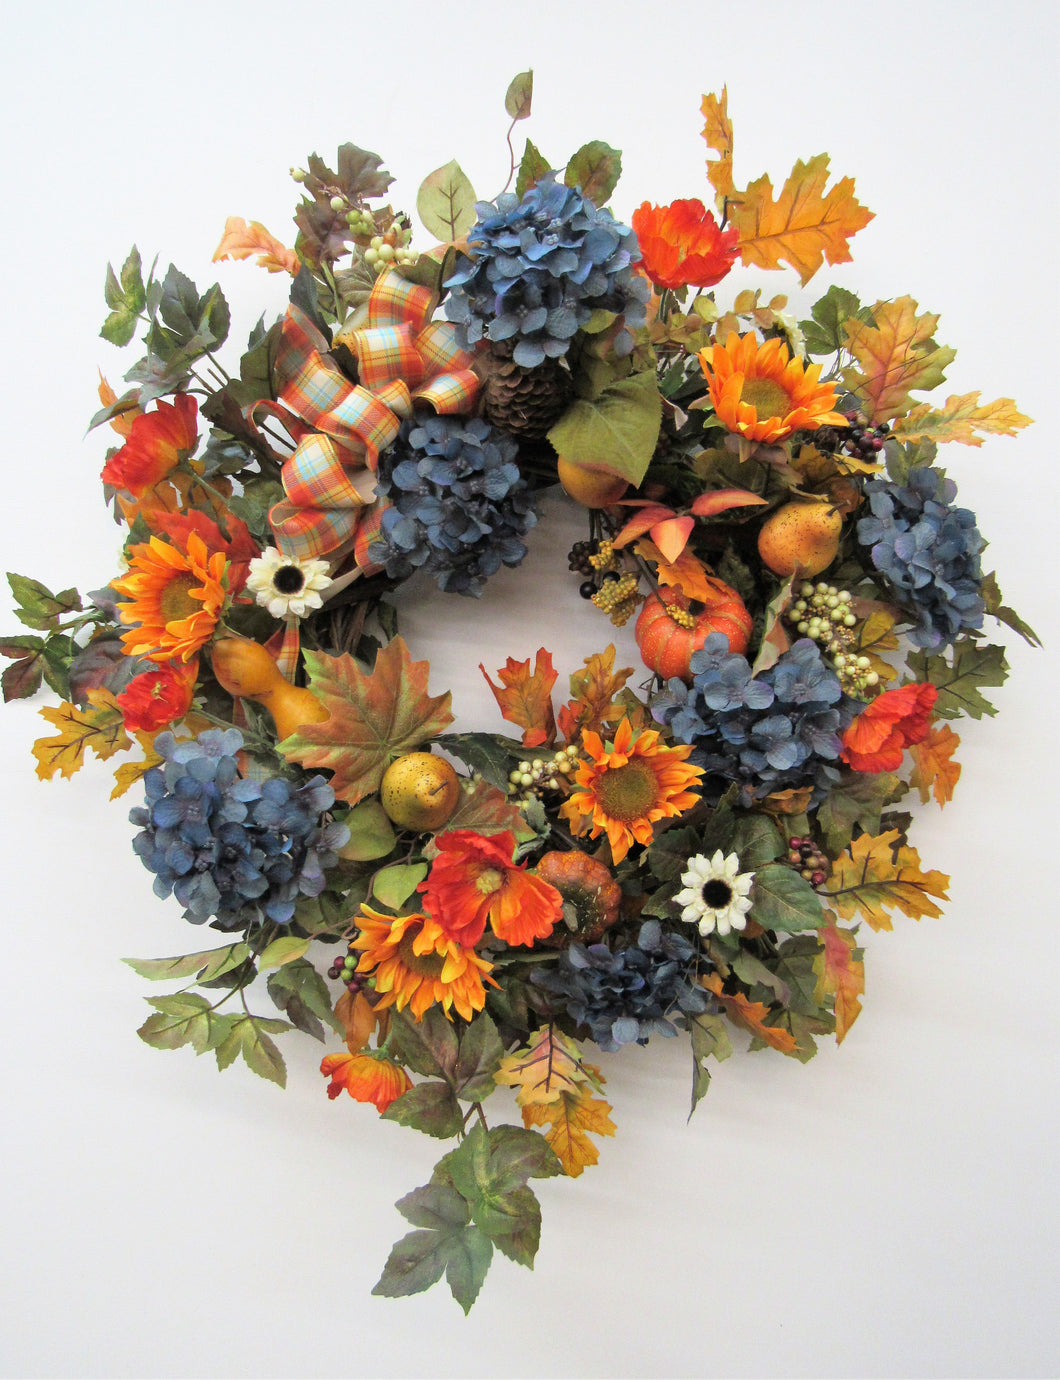 Gallery/Harv21 - April's Garden Wreath